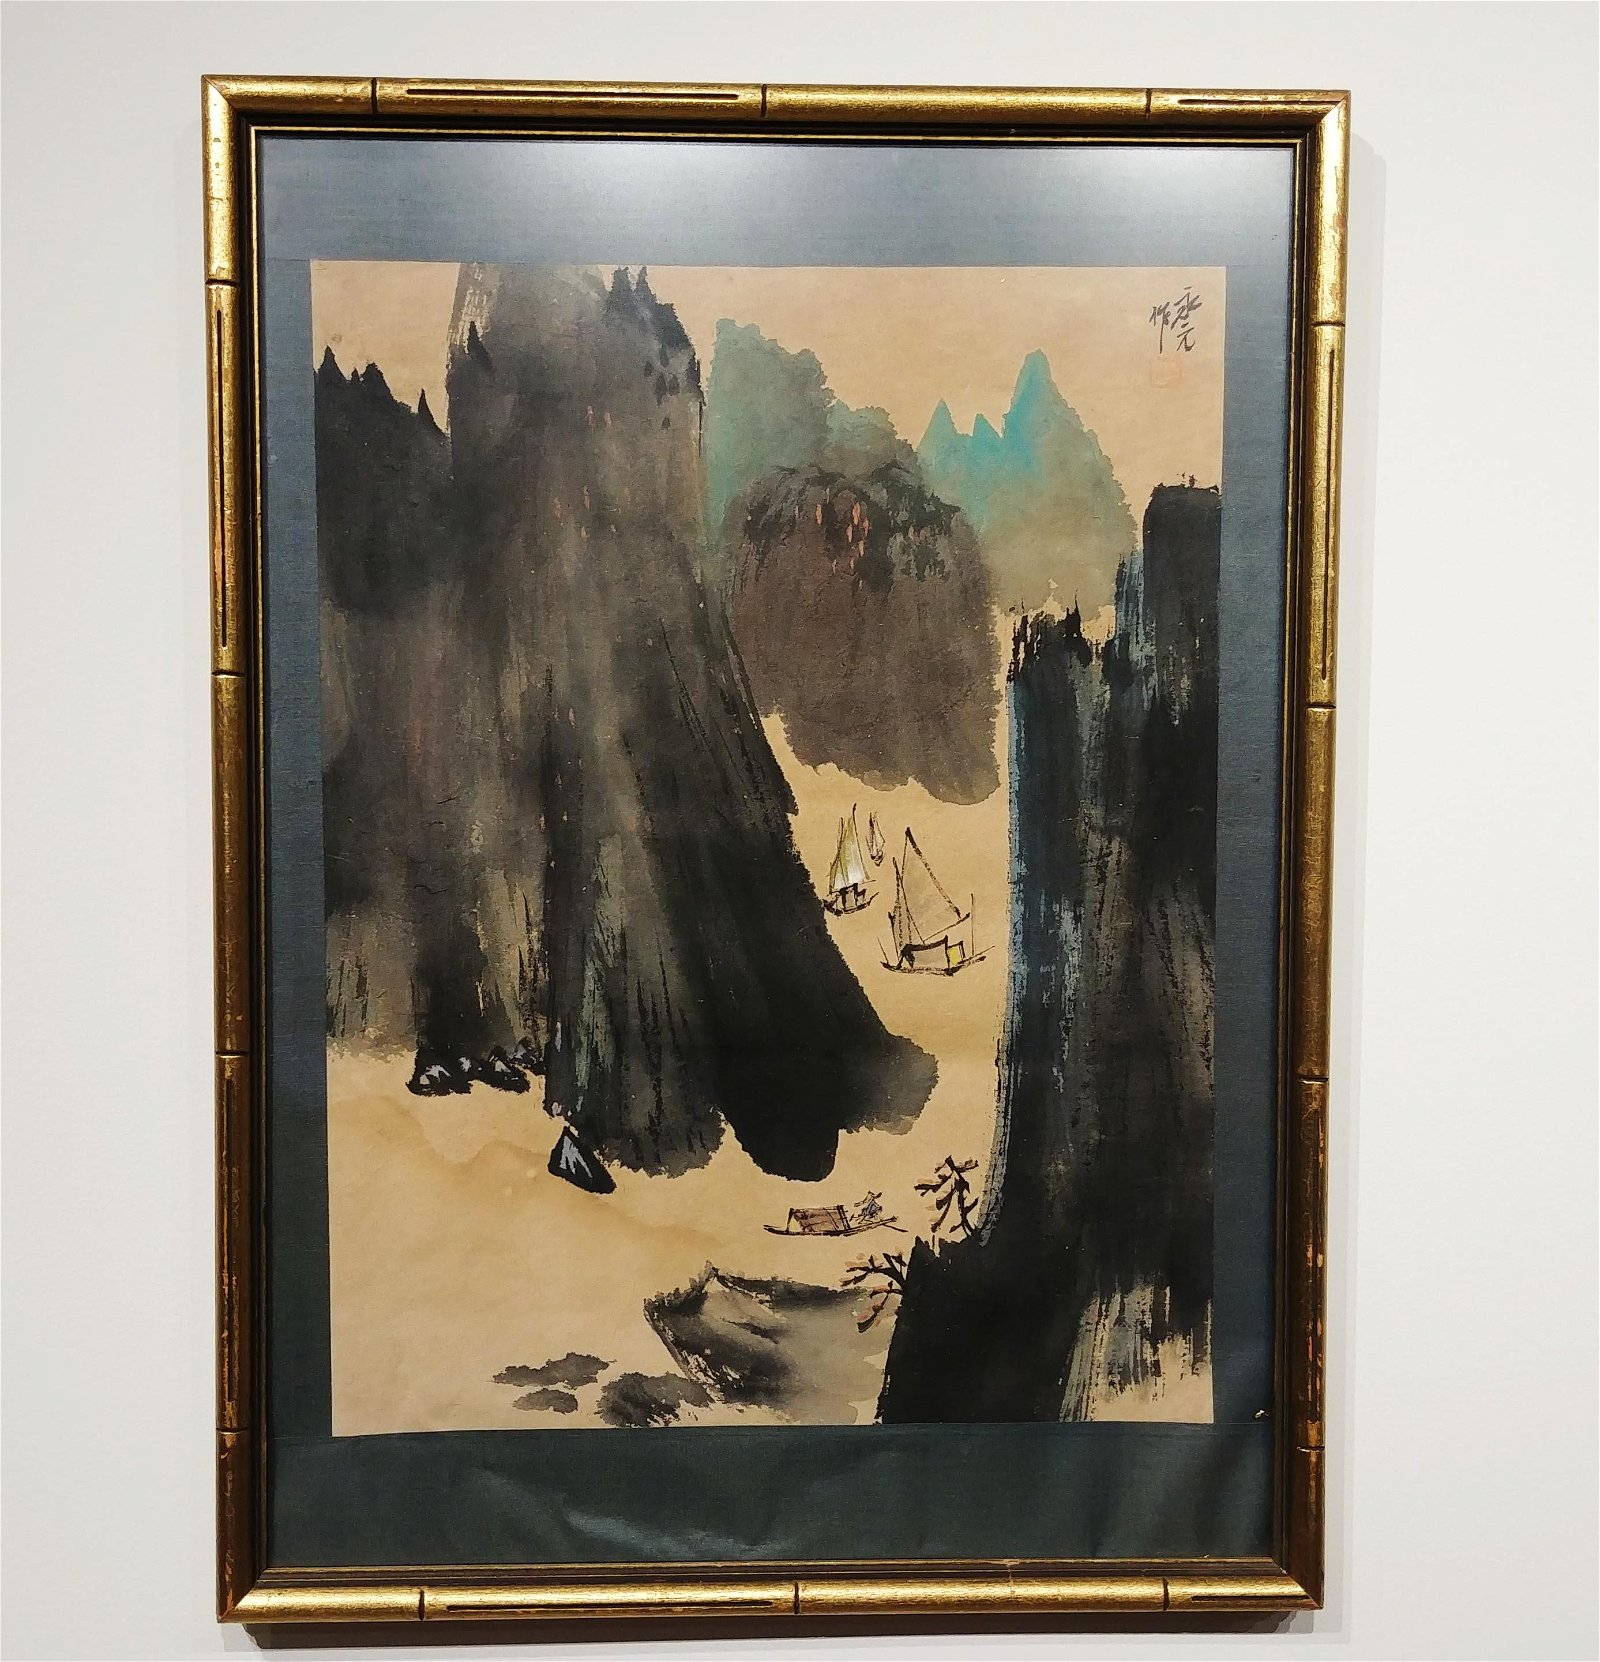 Chinese Landscape Painting, Framed, Signed. No Reserve!